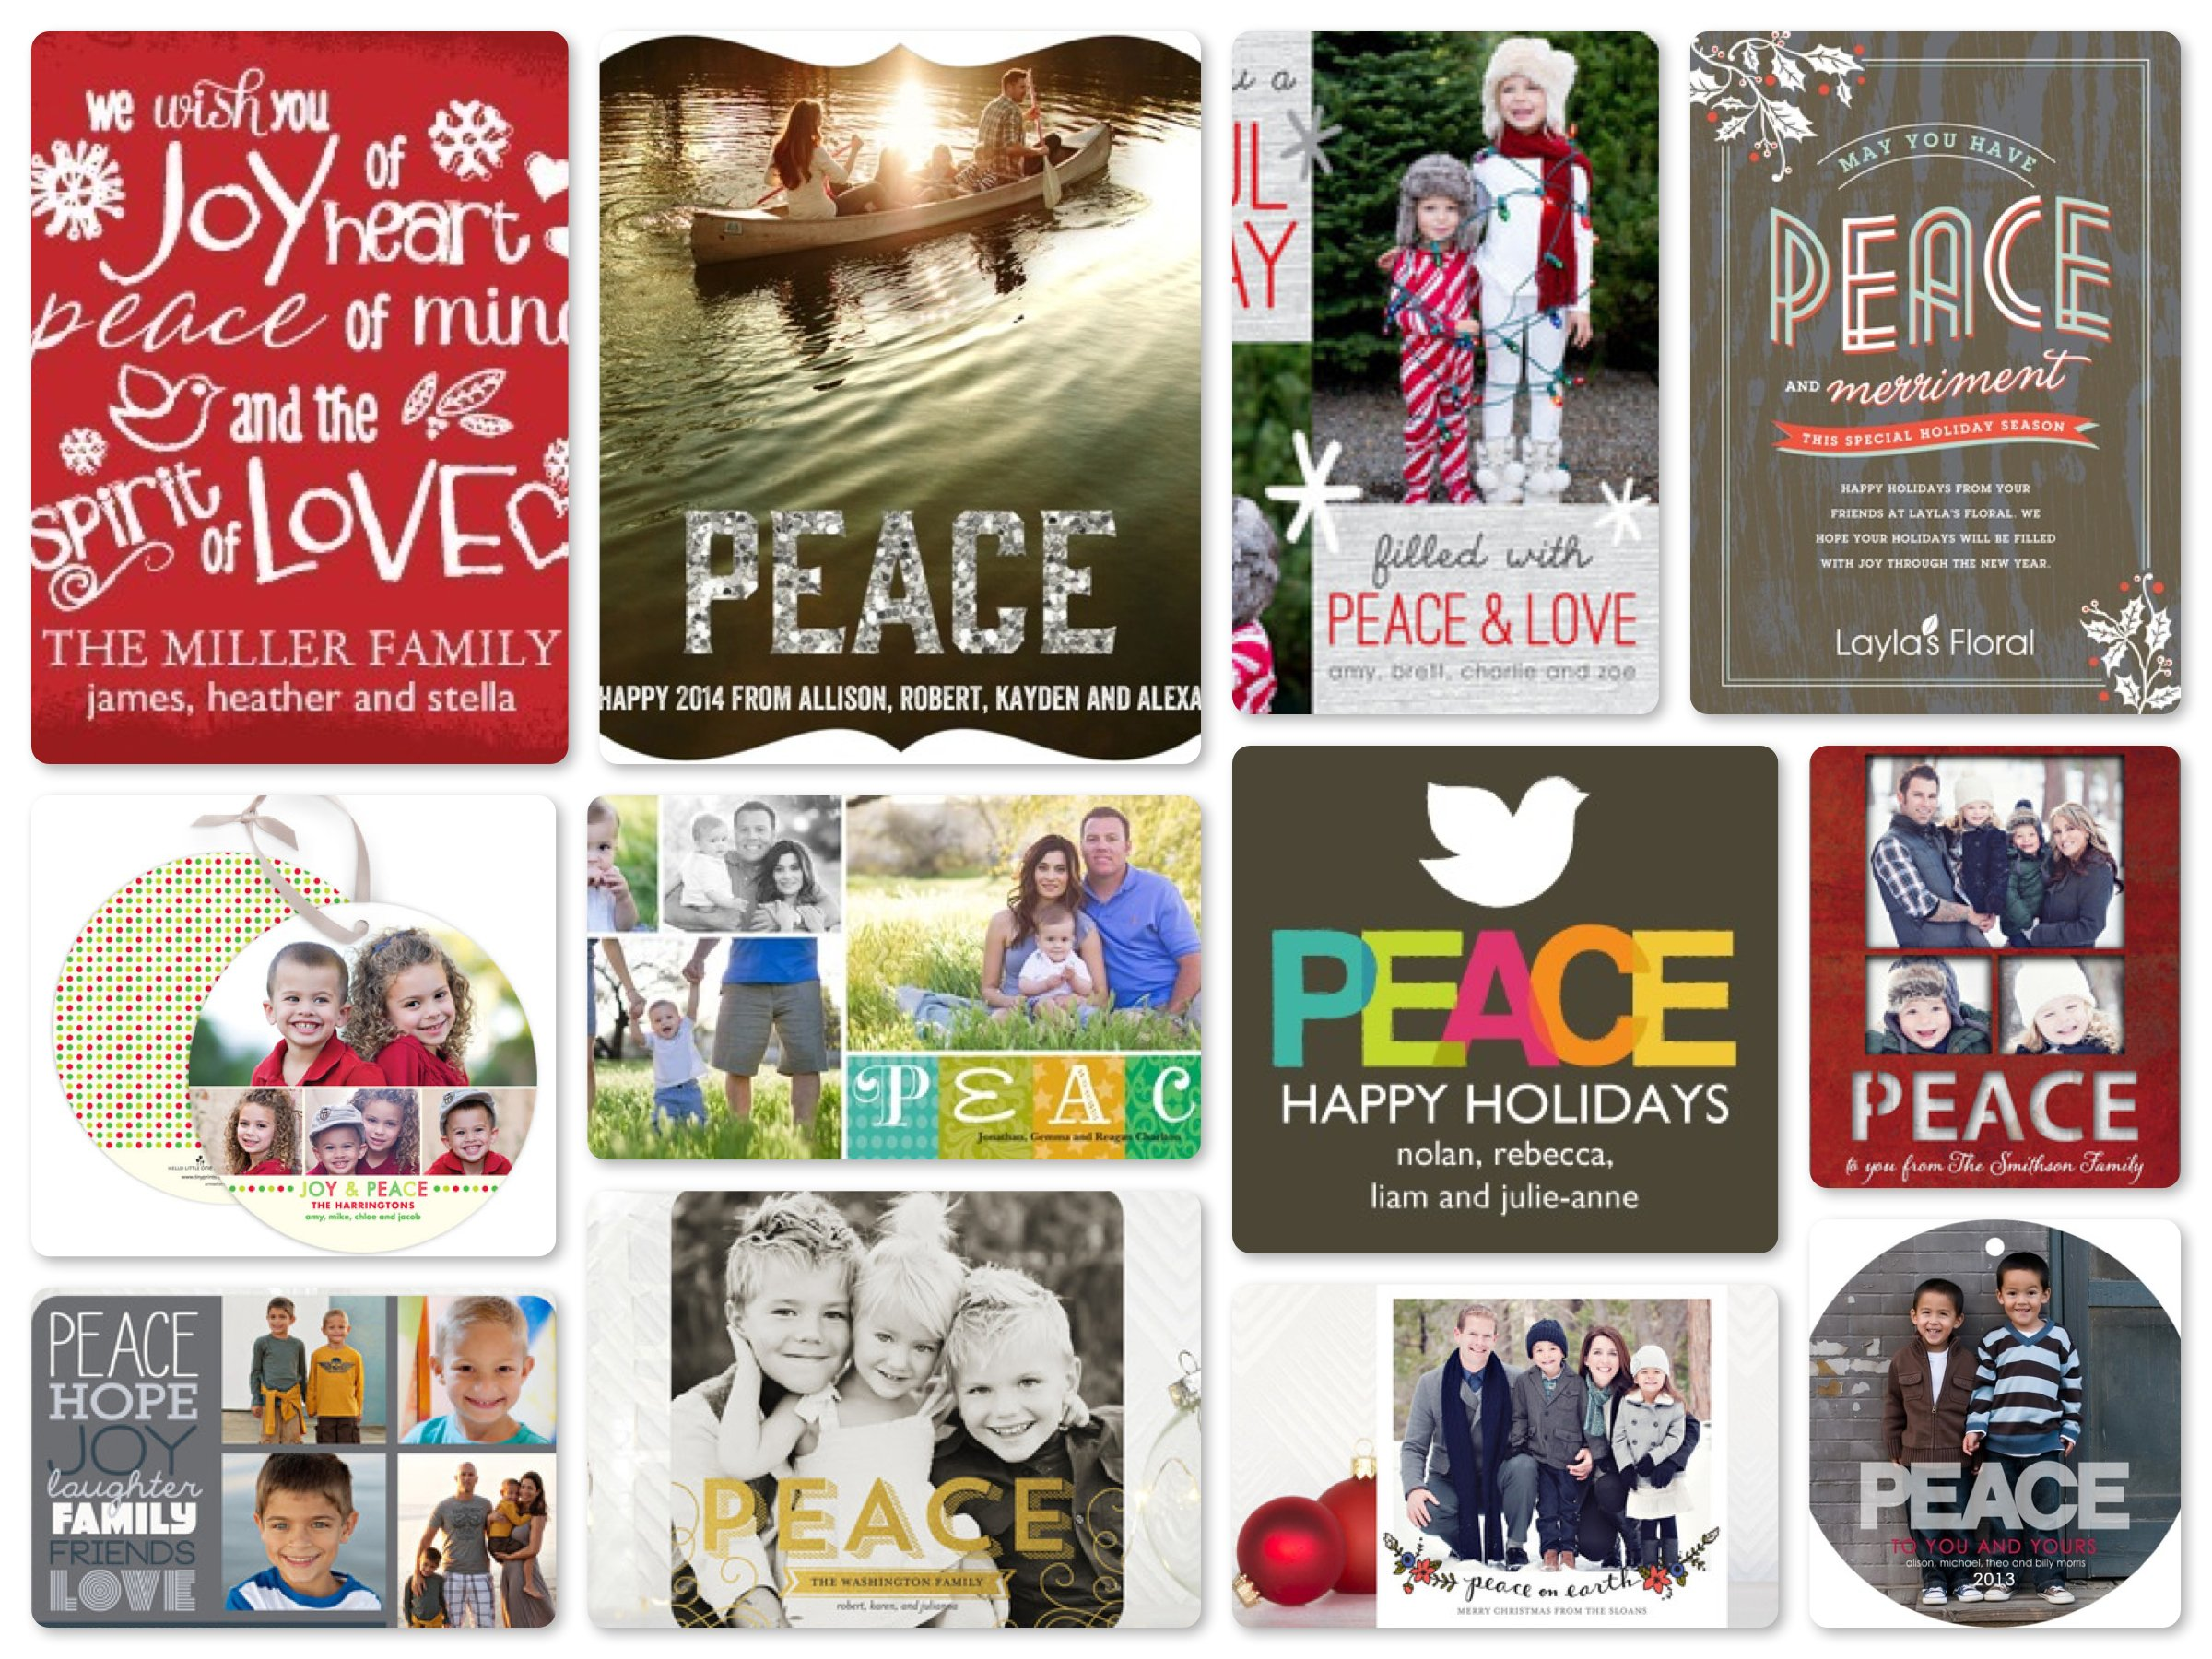 Peace  New Year Cards, Season Greetings Cards, Holiday Cards